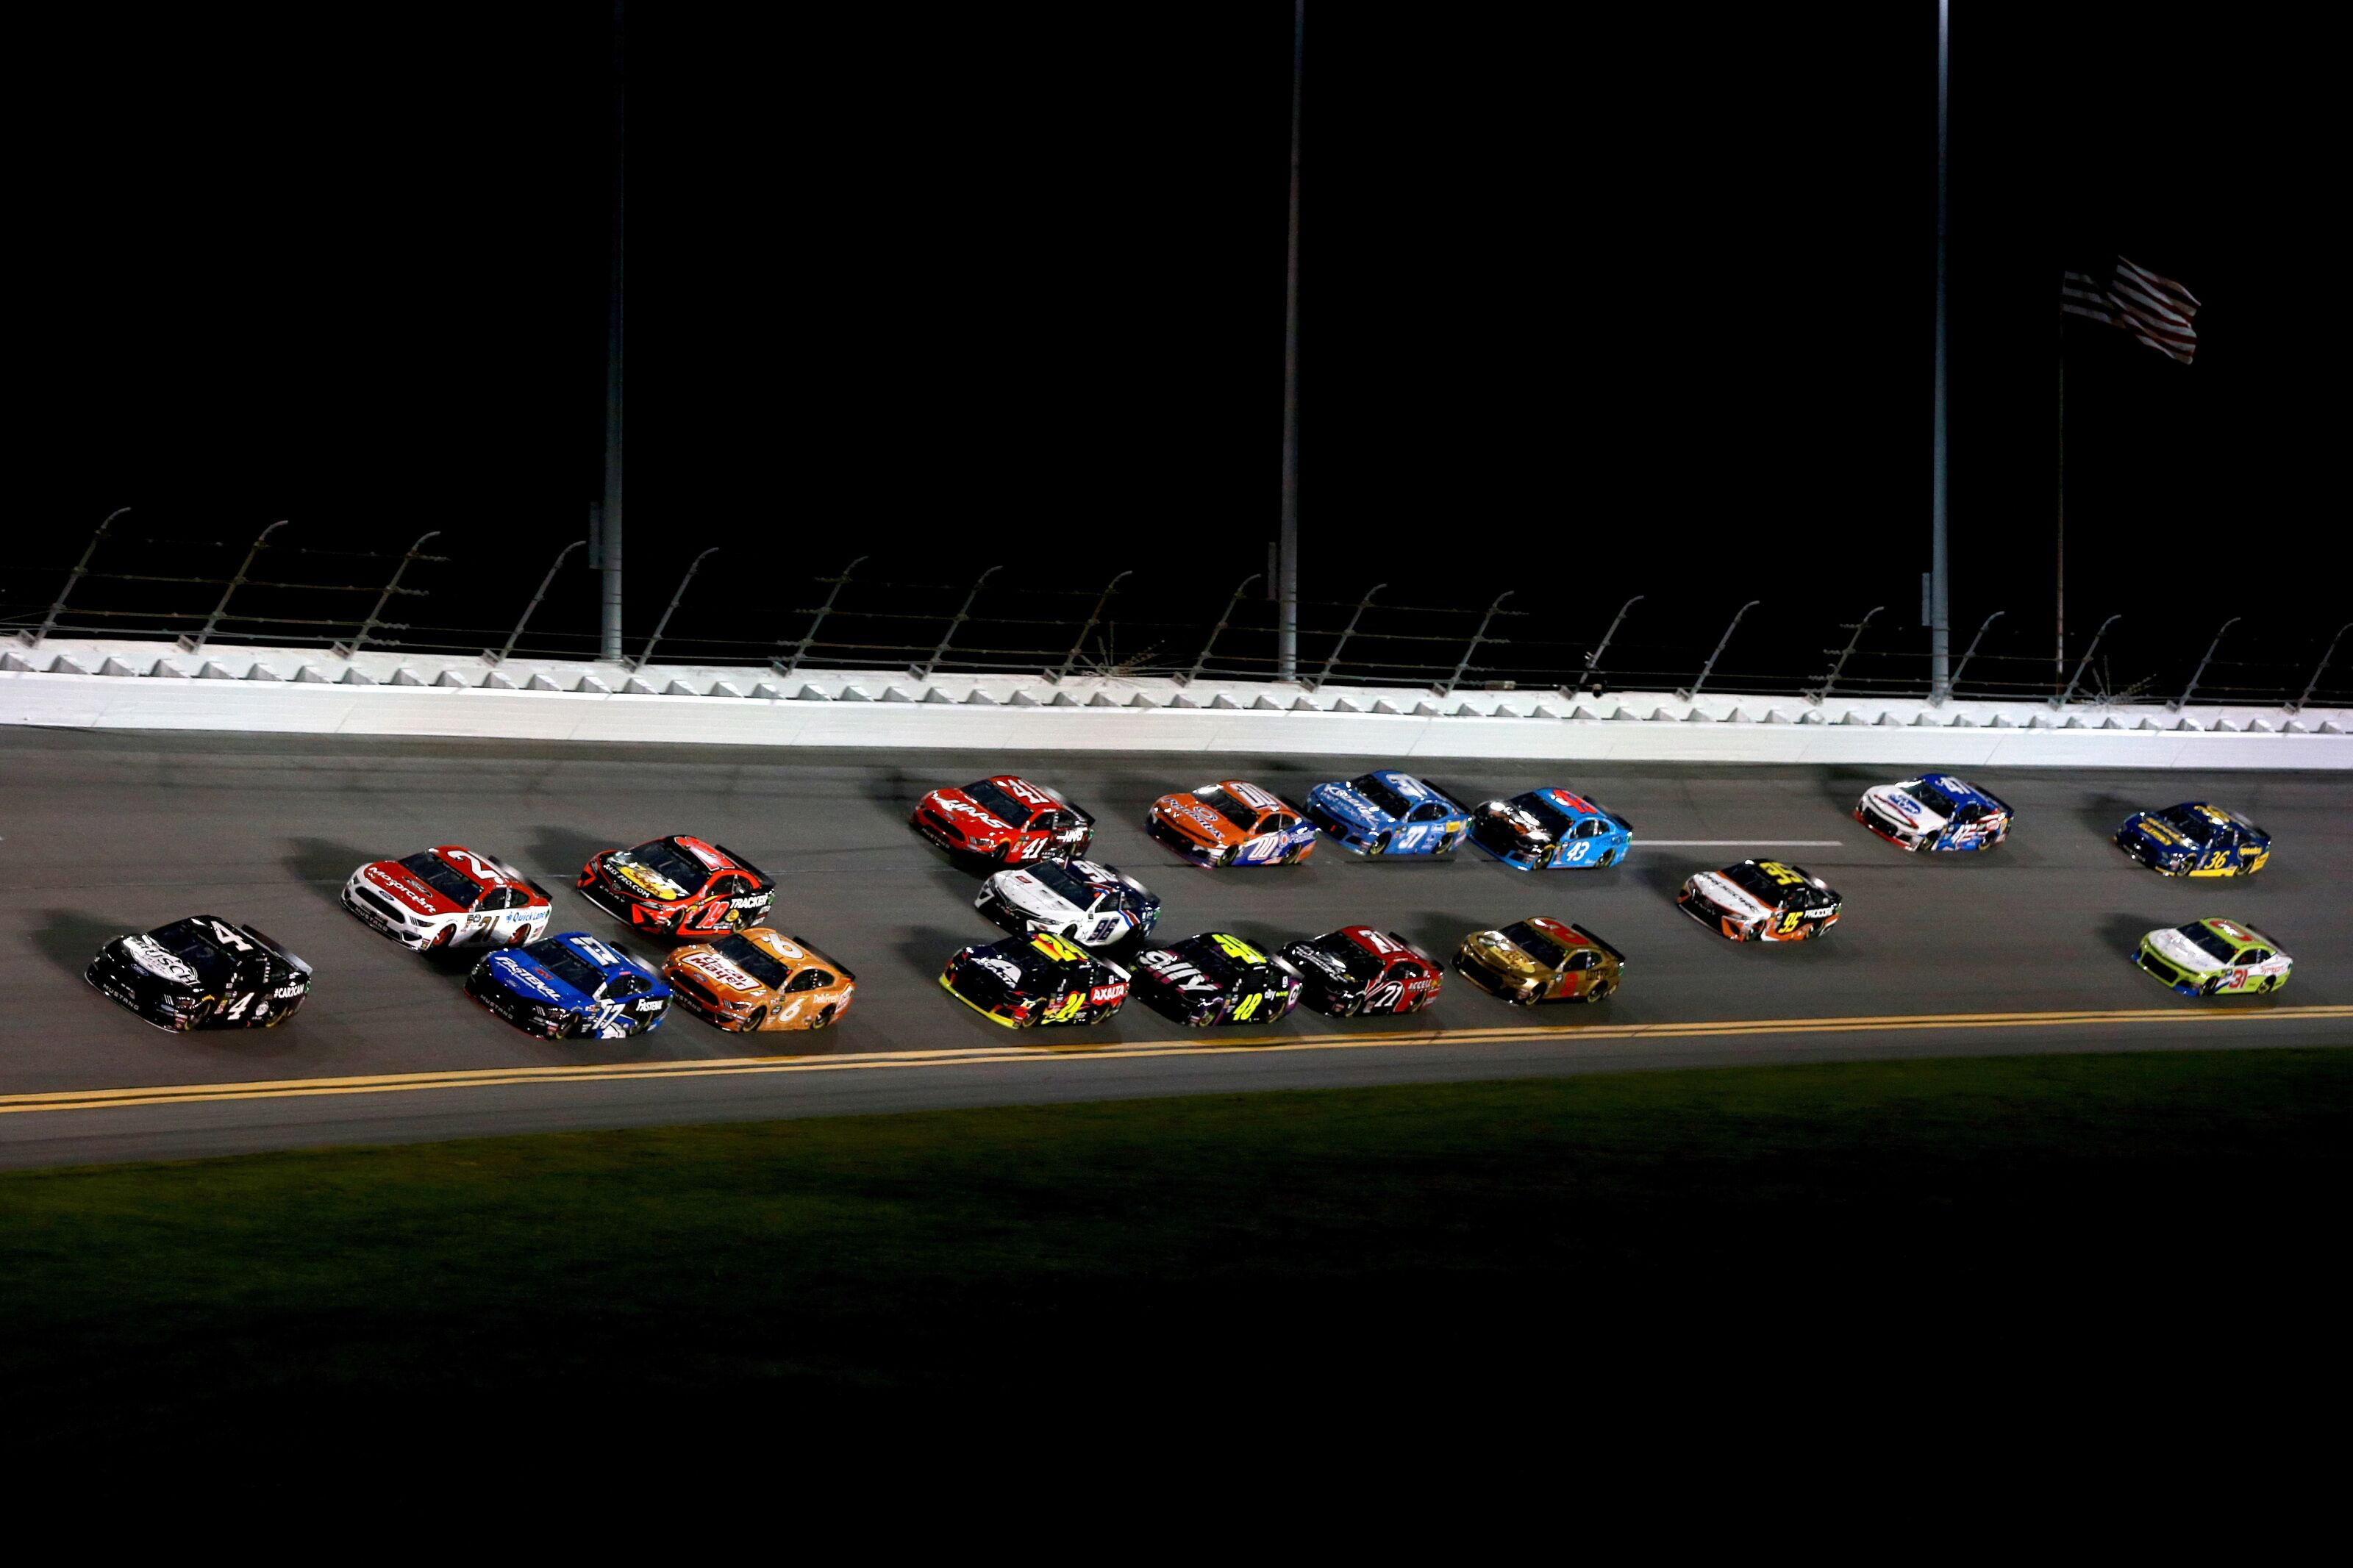 NASCAR: Notable omission from 2020 Daytona 500 entry list